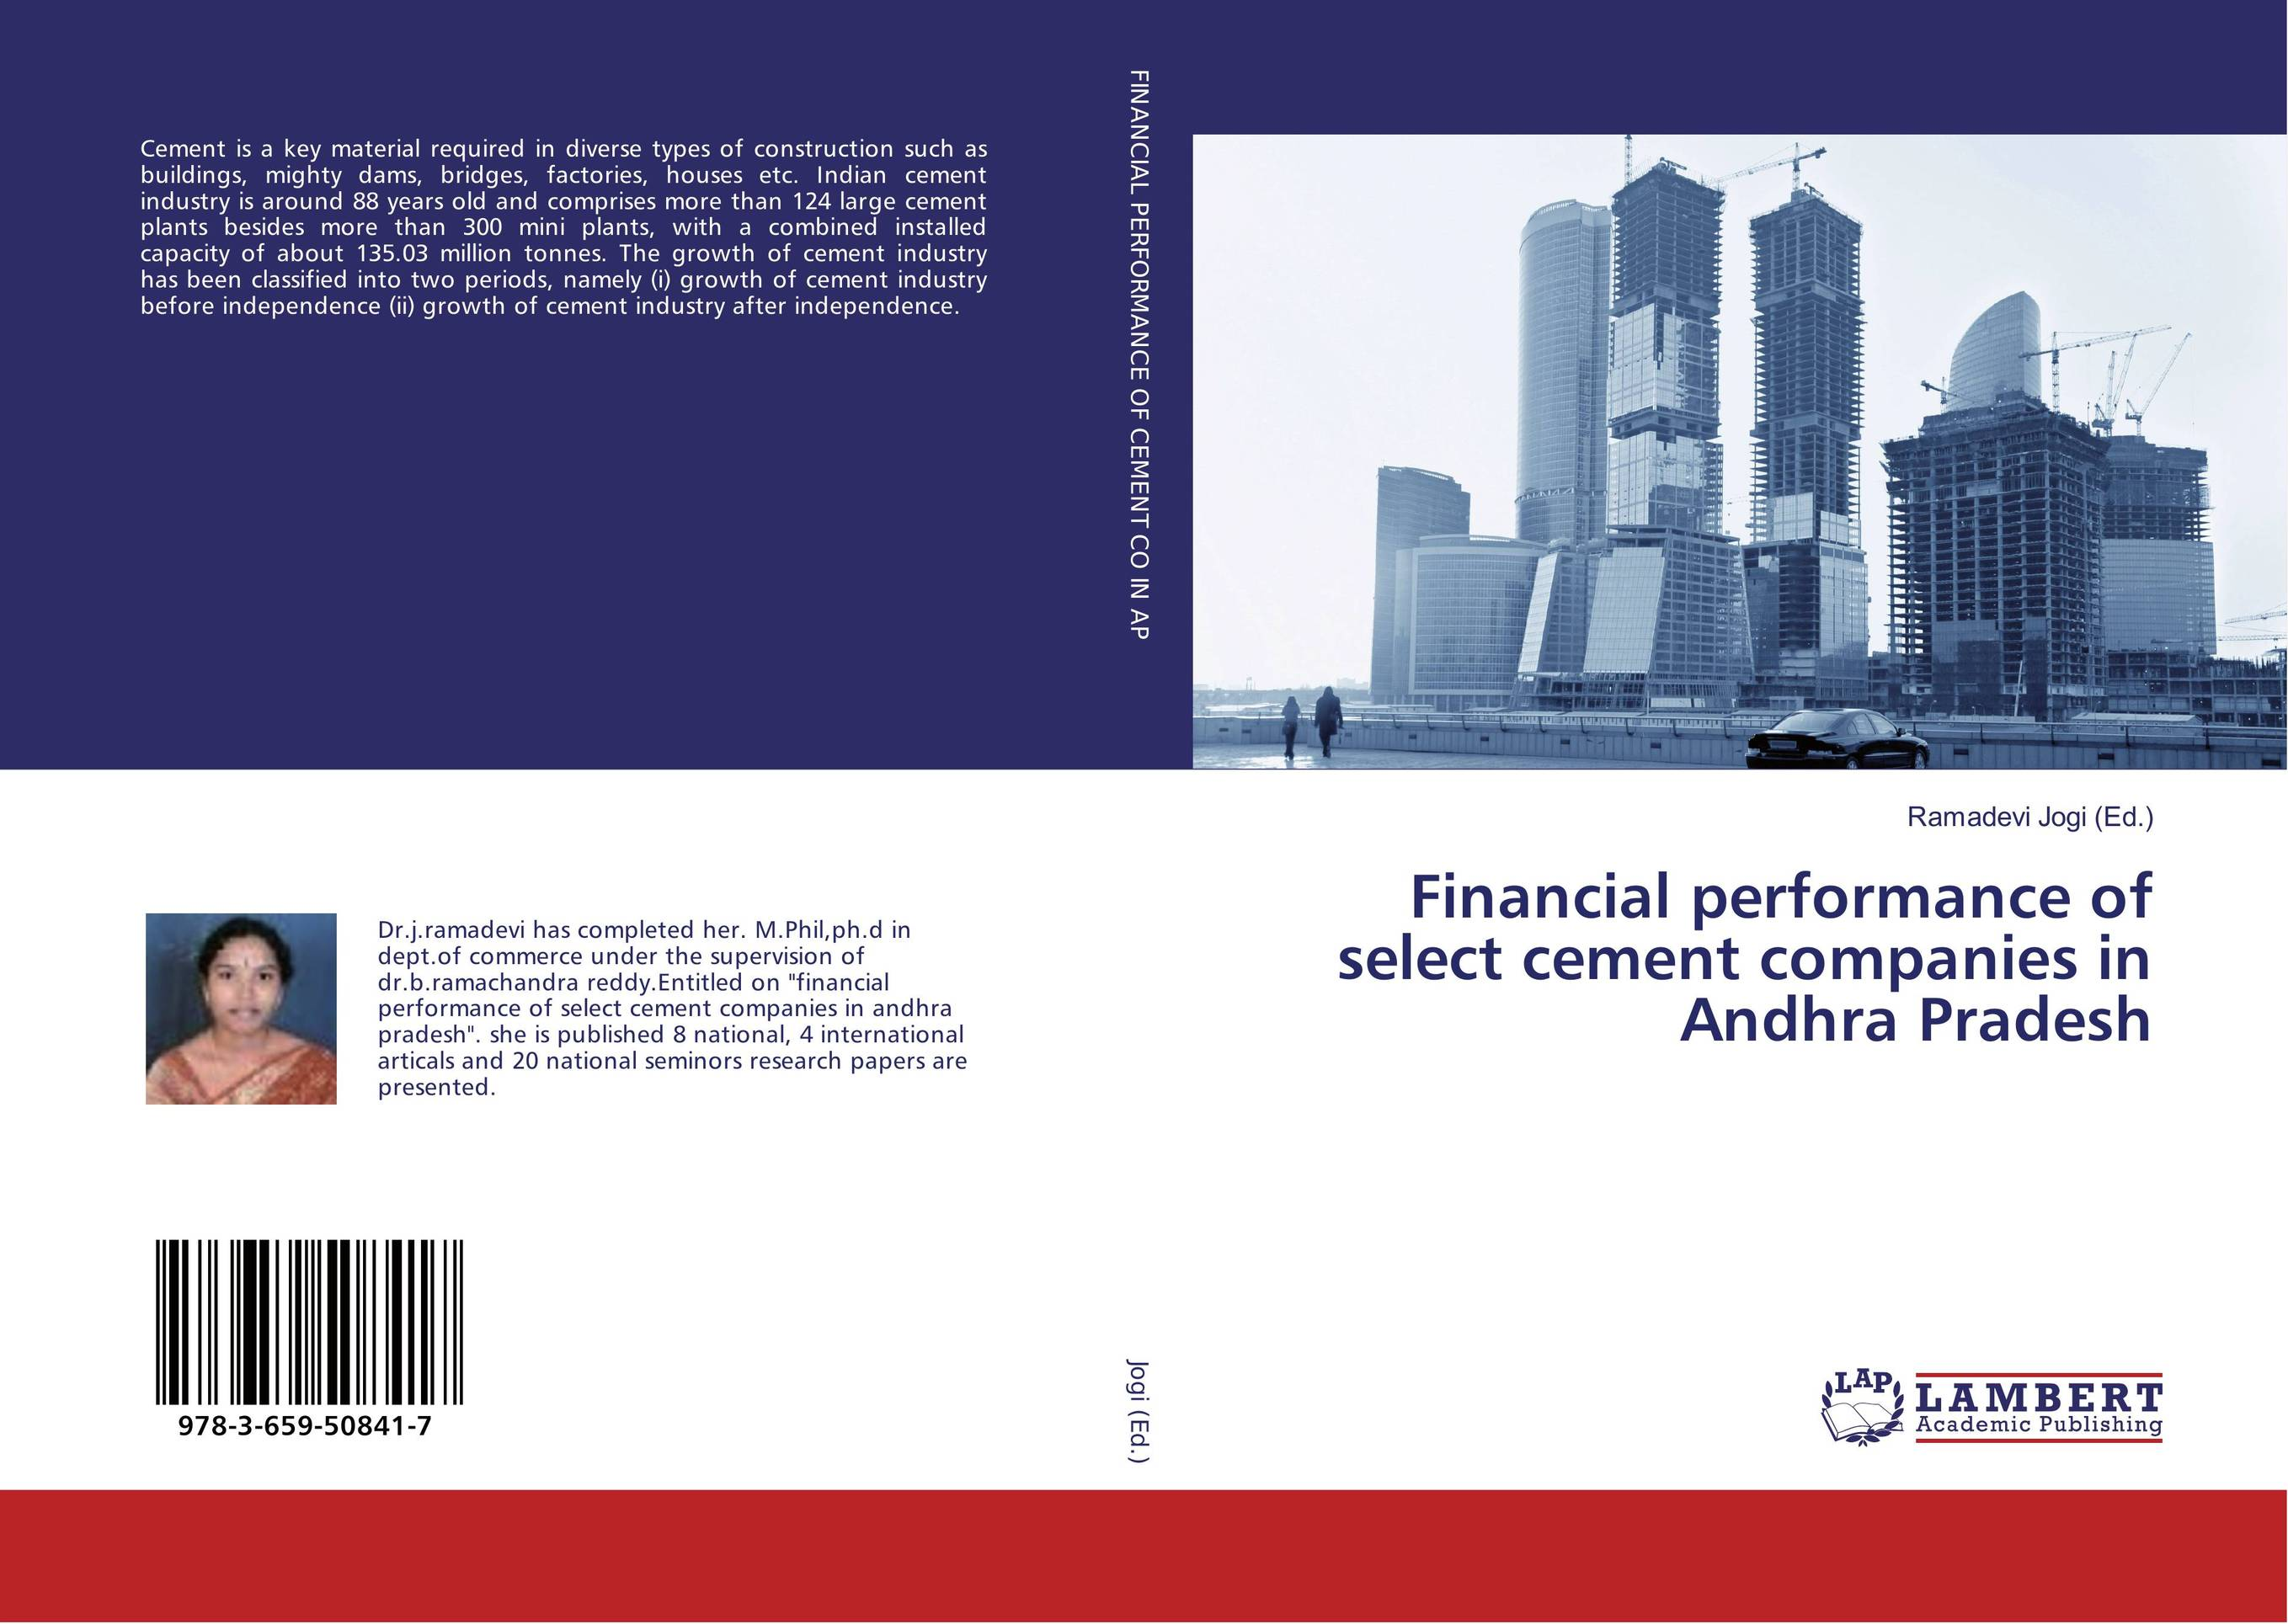 Financial performance of select cement companies in Andhra Pradesh financial performance of lanco industries limited in chittoor district